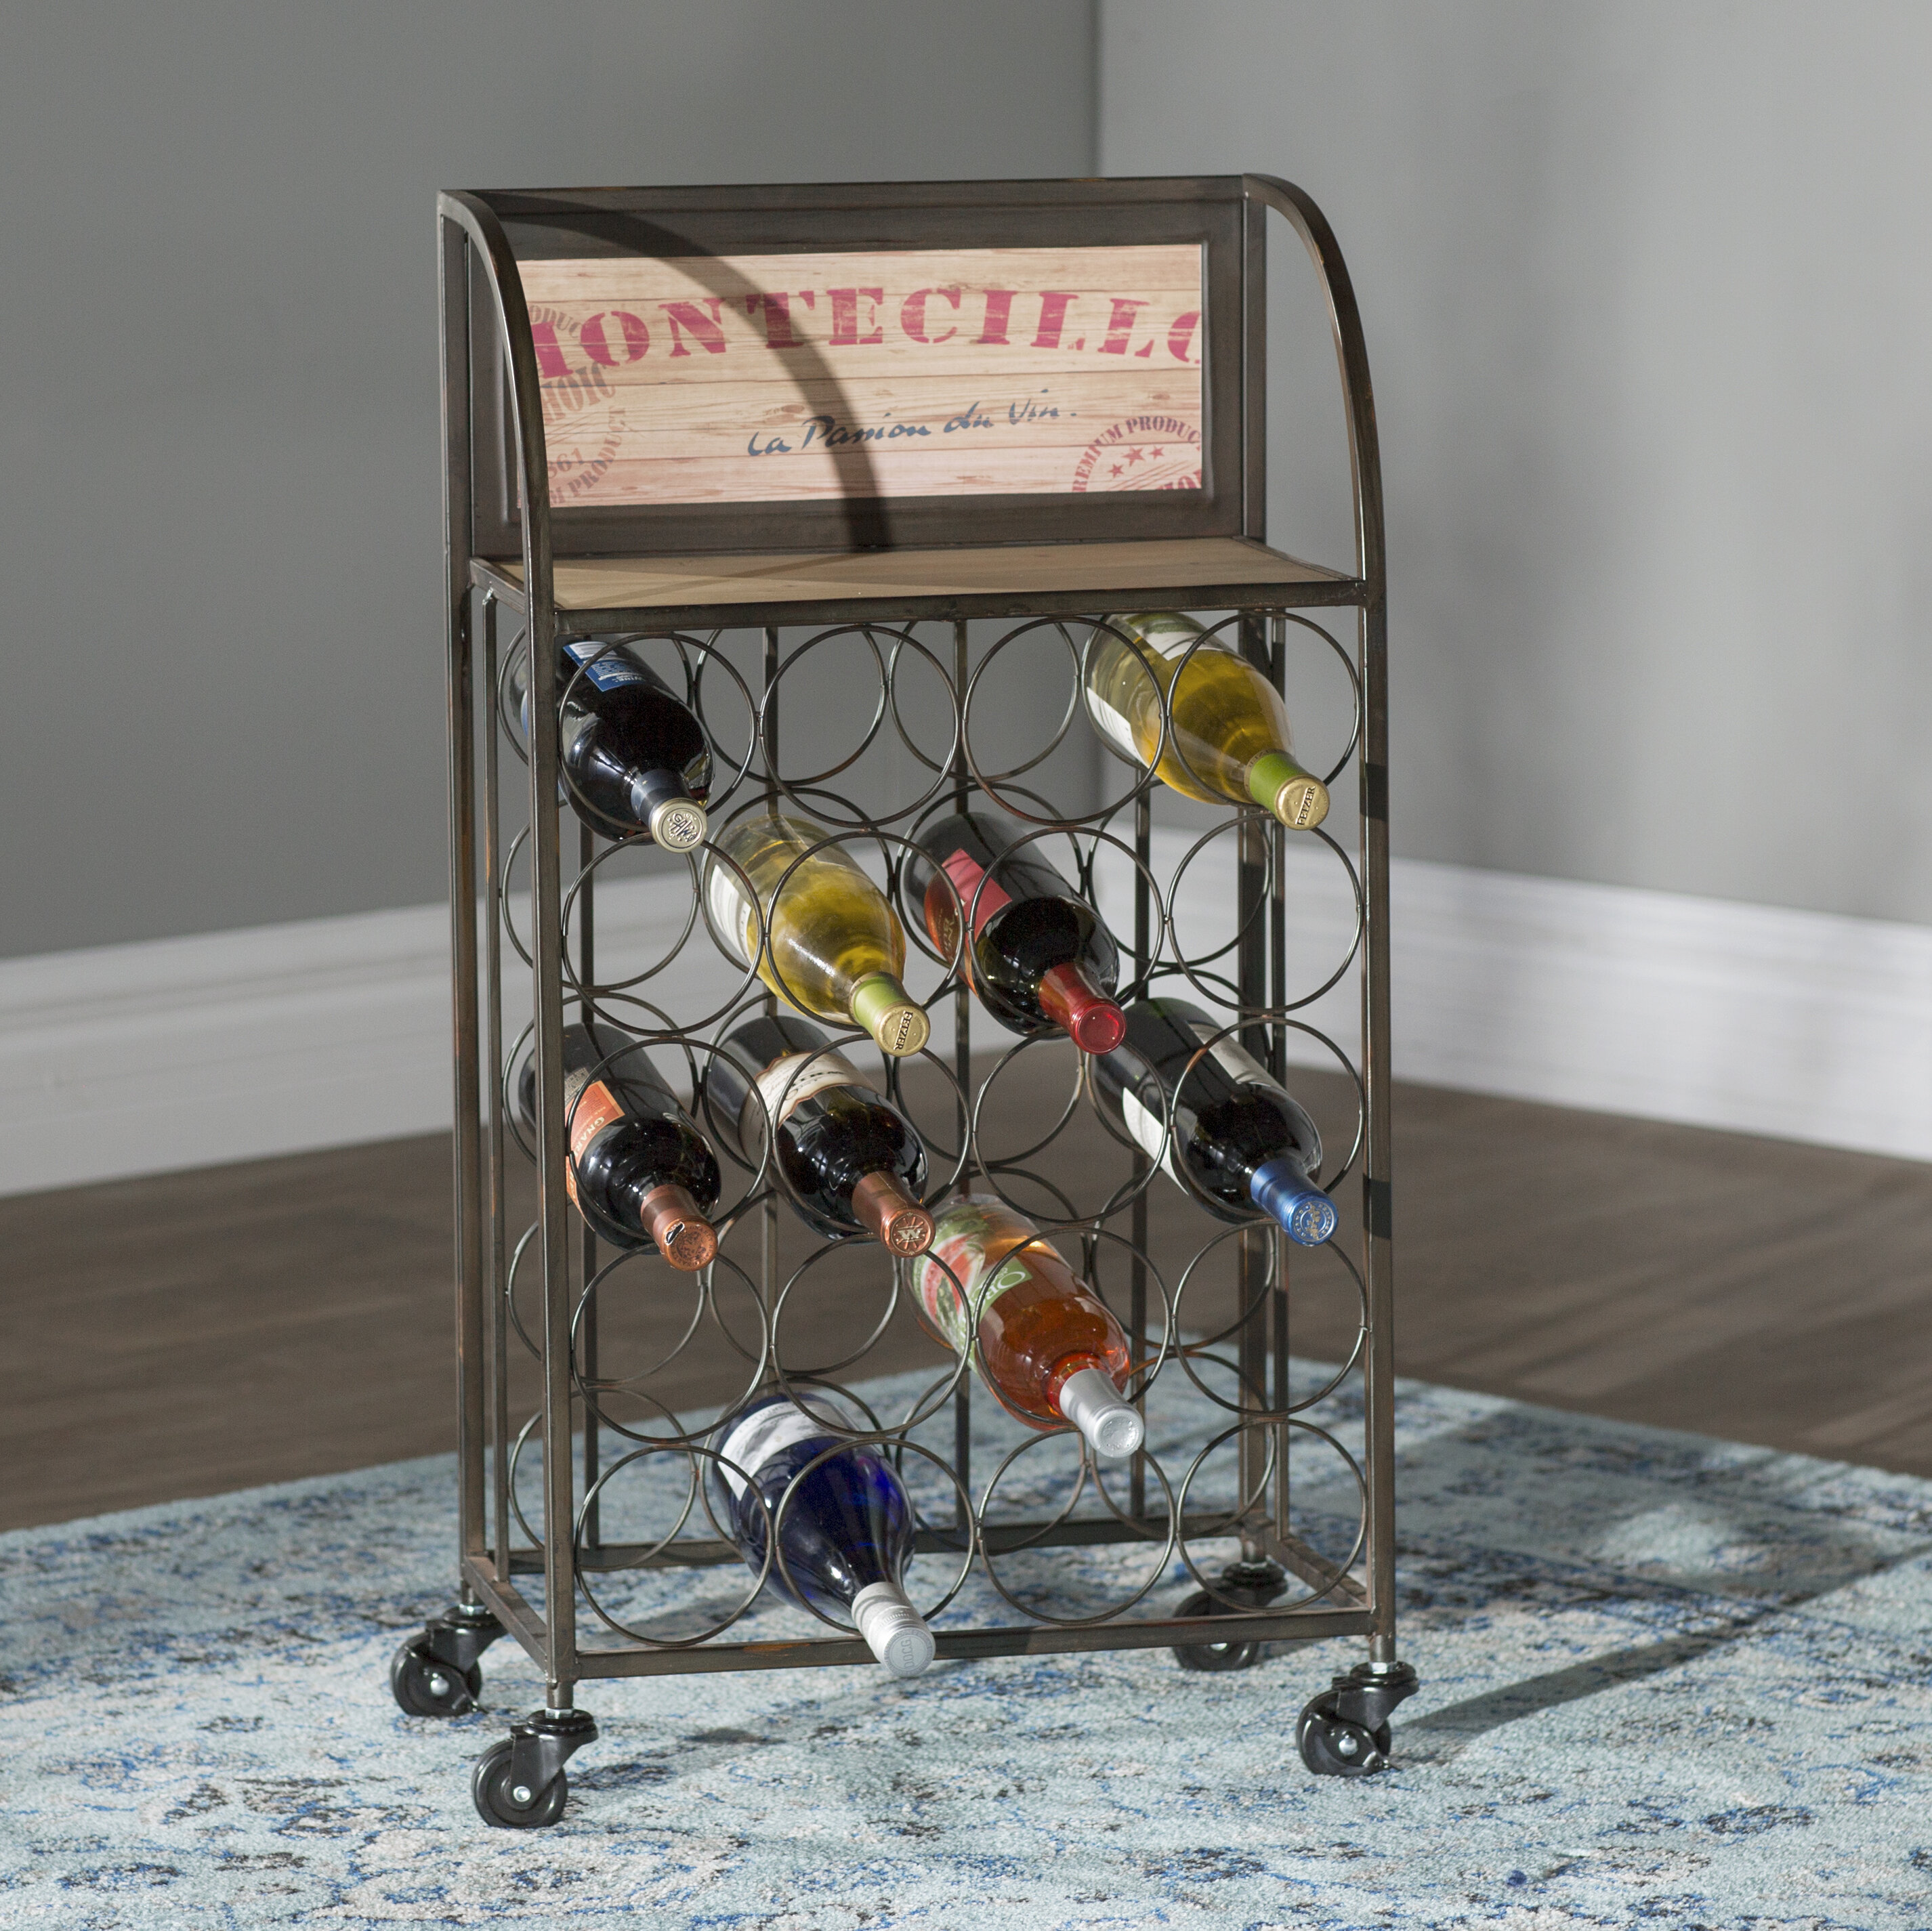 central wine small product iron top rack coast archives bottle creations racks category barrel table